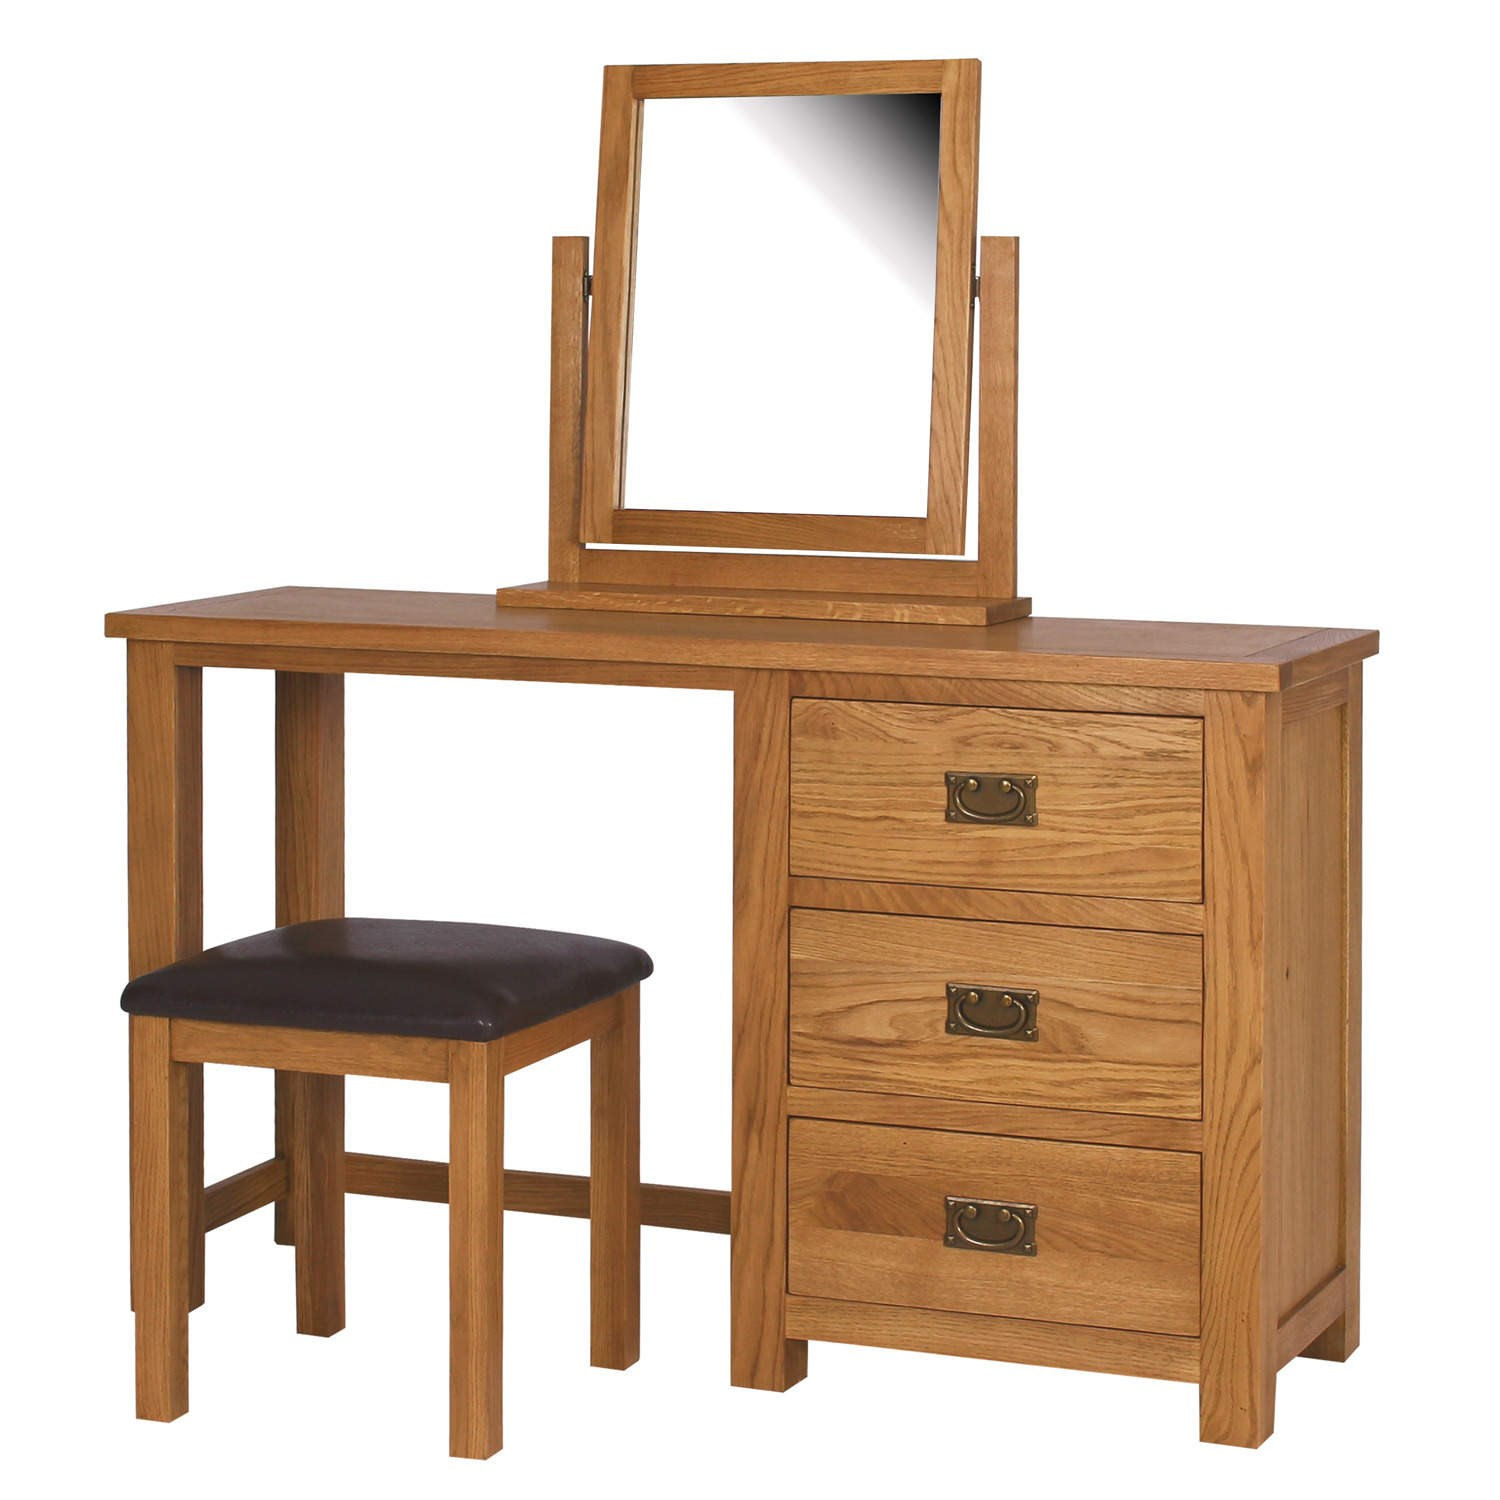 Rustic saxon solid oak wooden dressing table bedroom for Dressing table